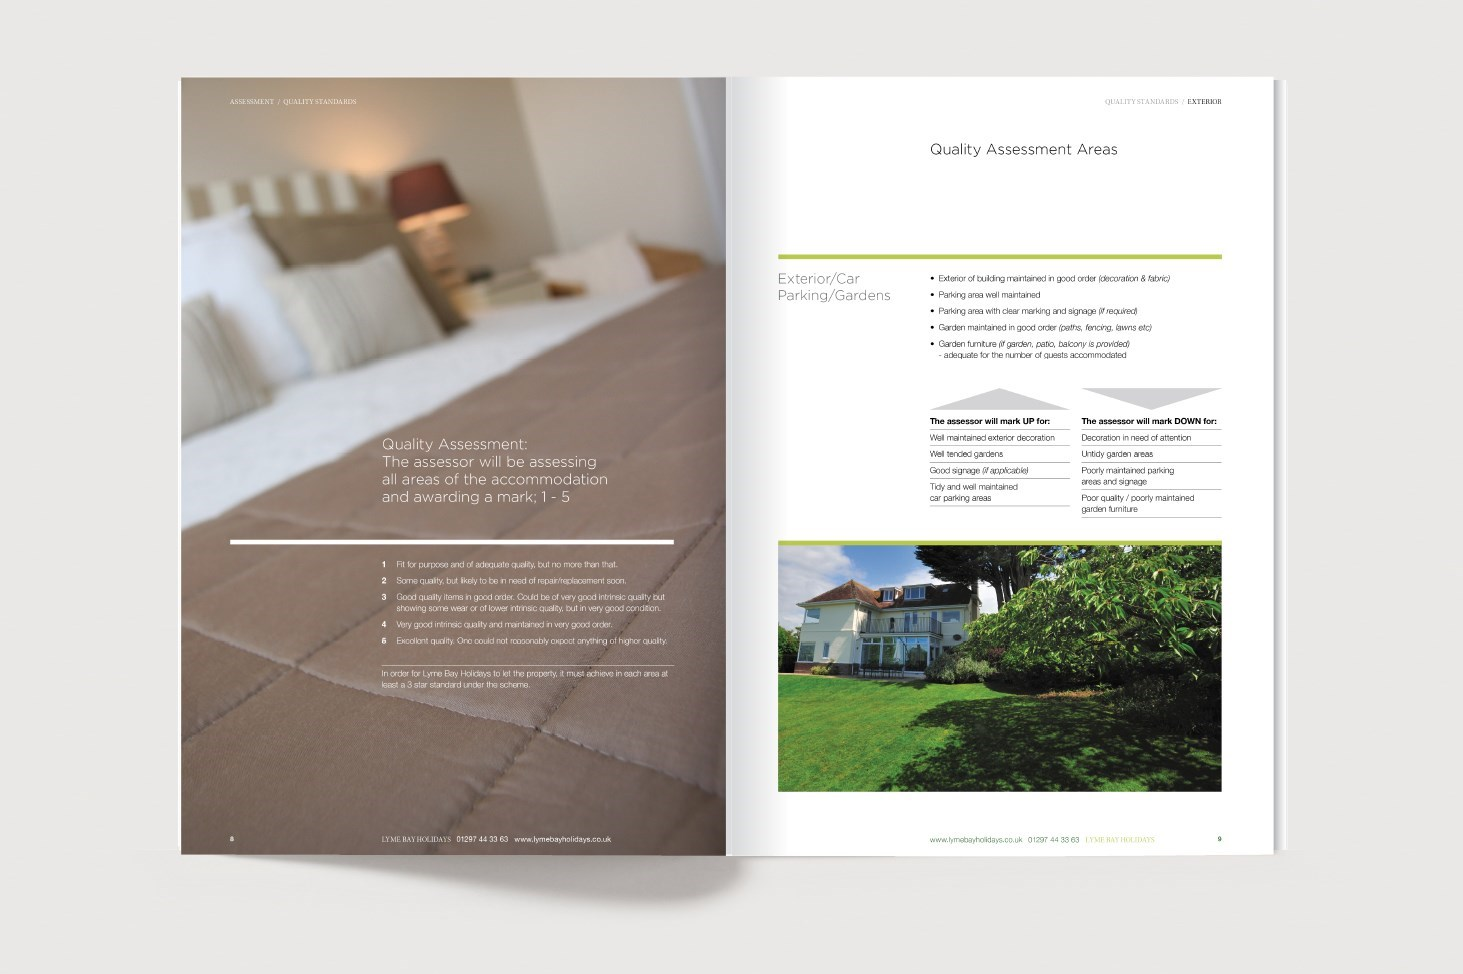 Inside spread for the Brand Guidelines for Lyme Bay Holidays